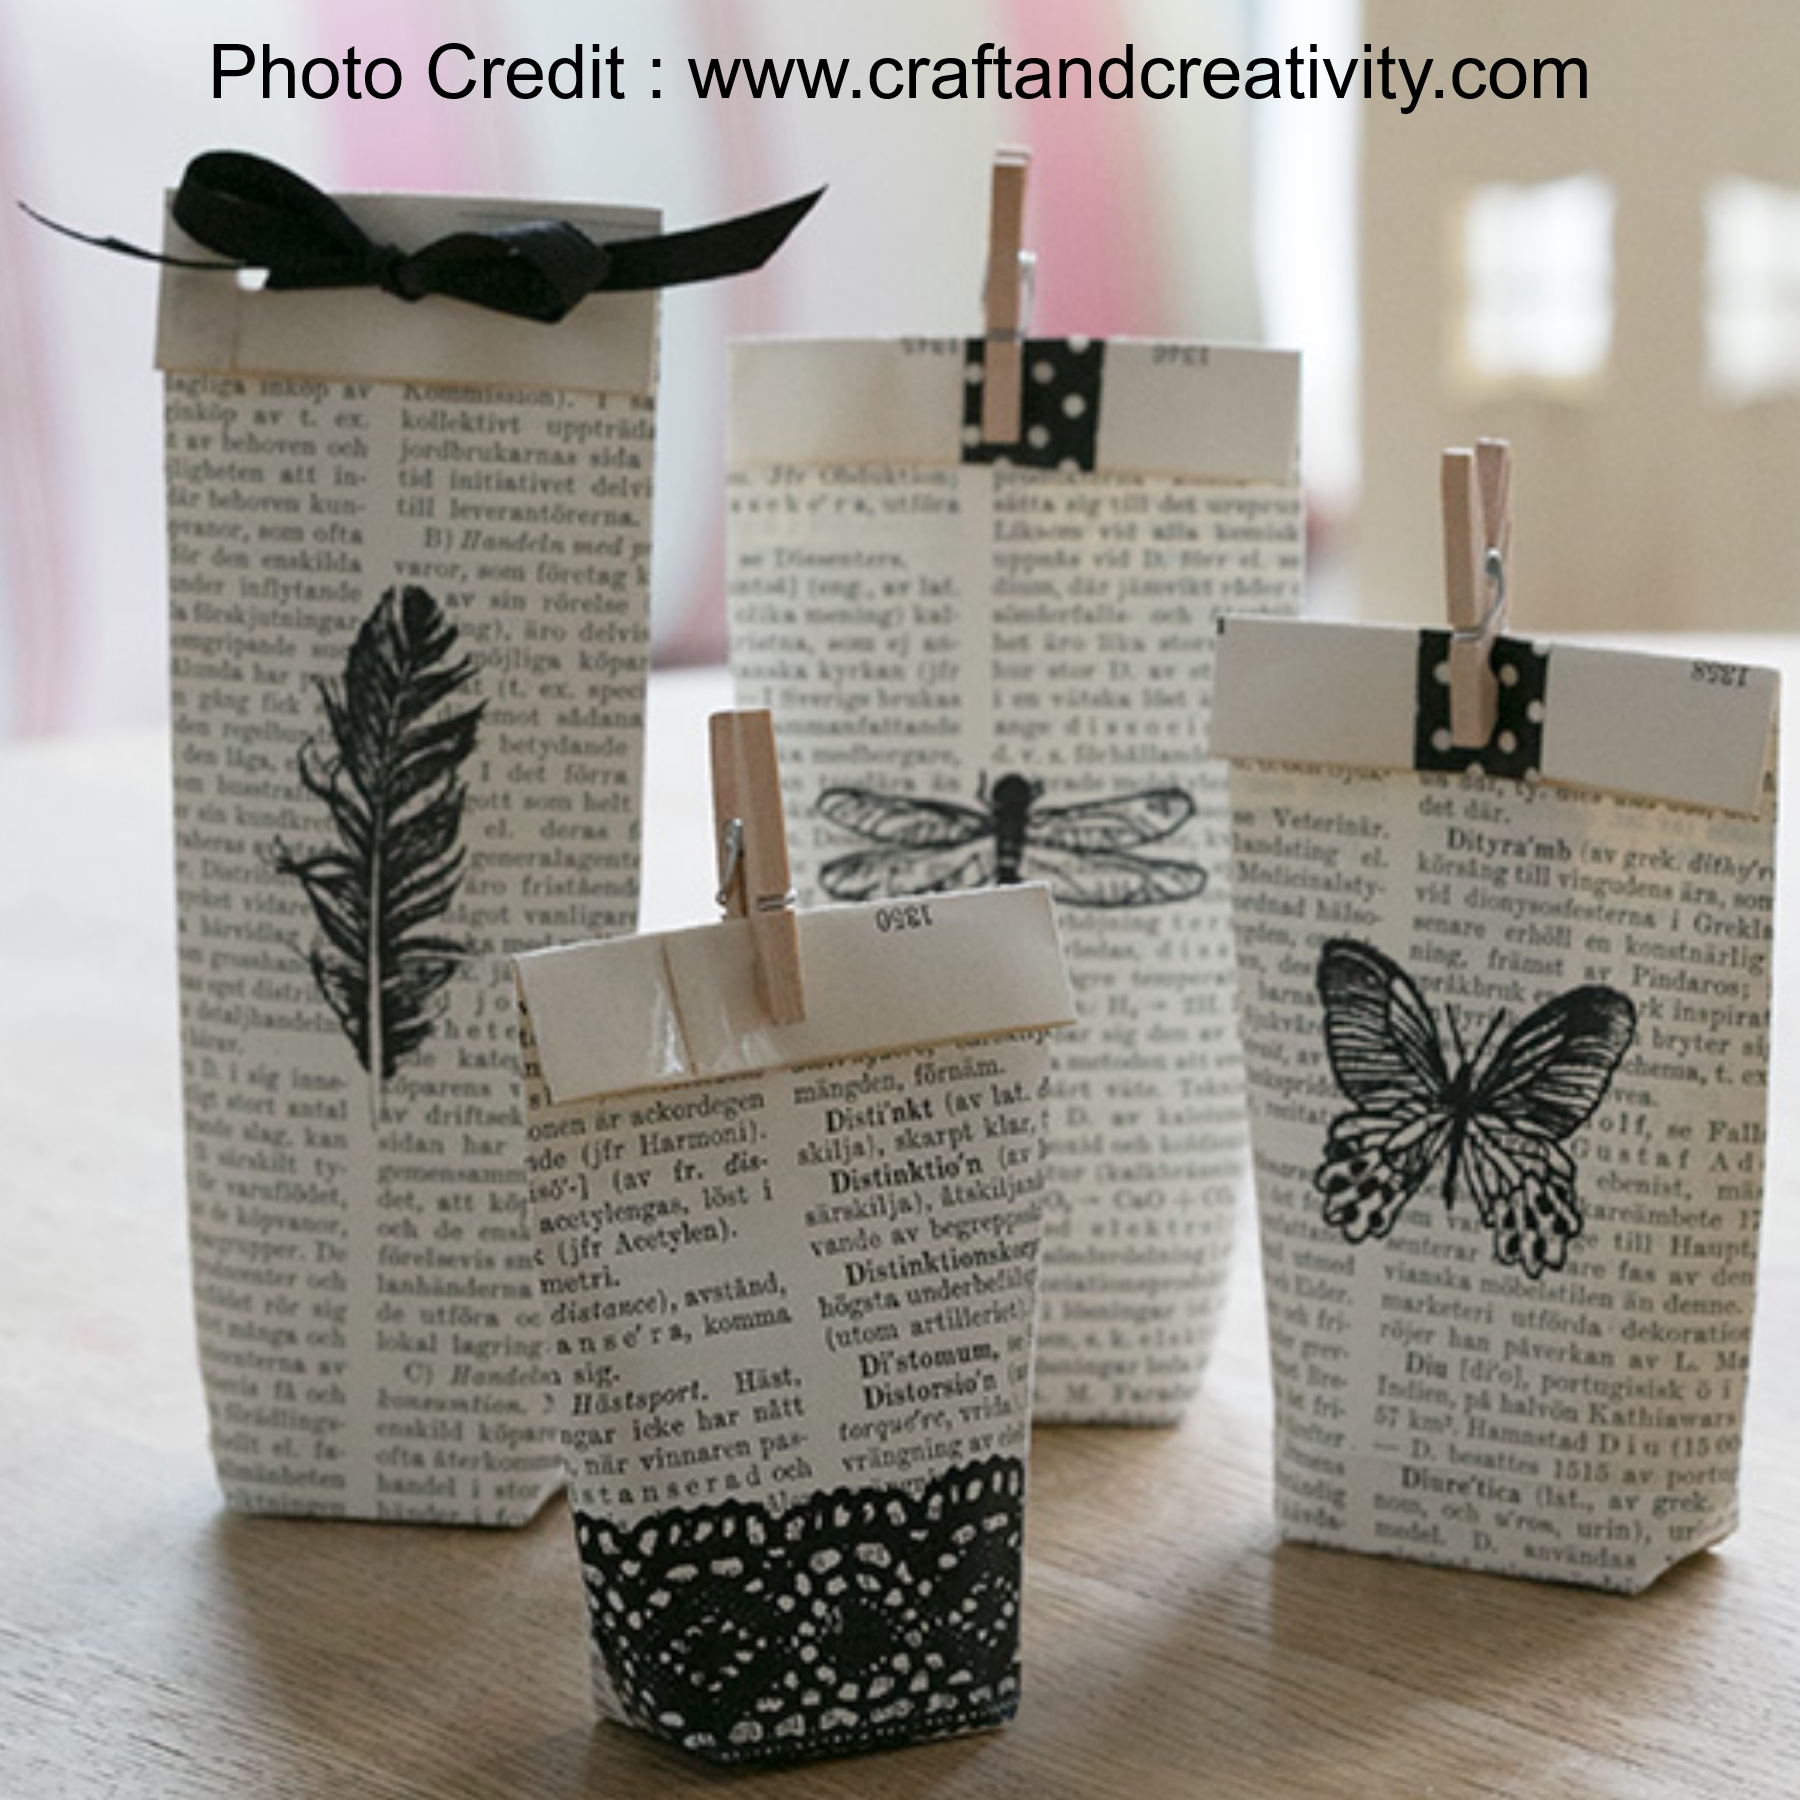 Mini Gift Bags from Craft And Creativity